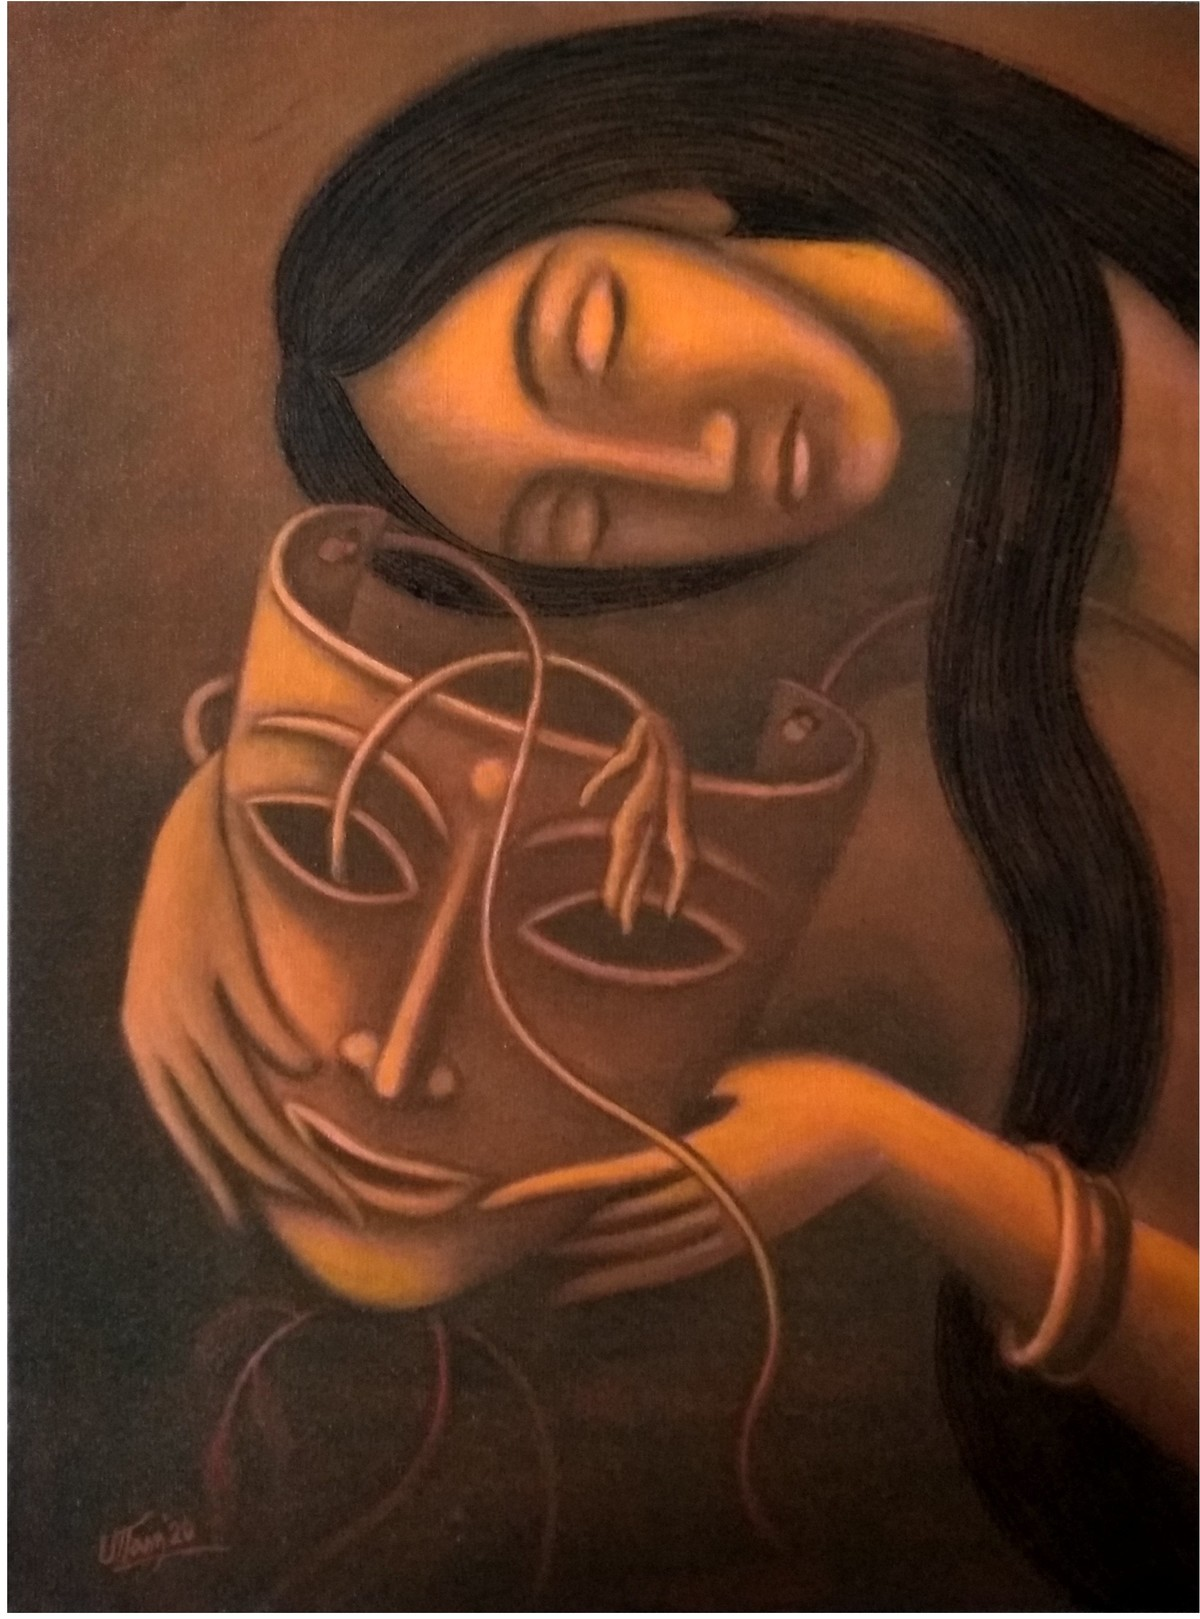 Broken Dream by Uttam Bhattacharya, Expressionism Painting, Mixed Media on Canvas, Cork color